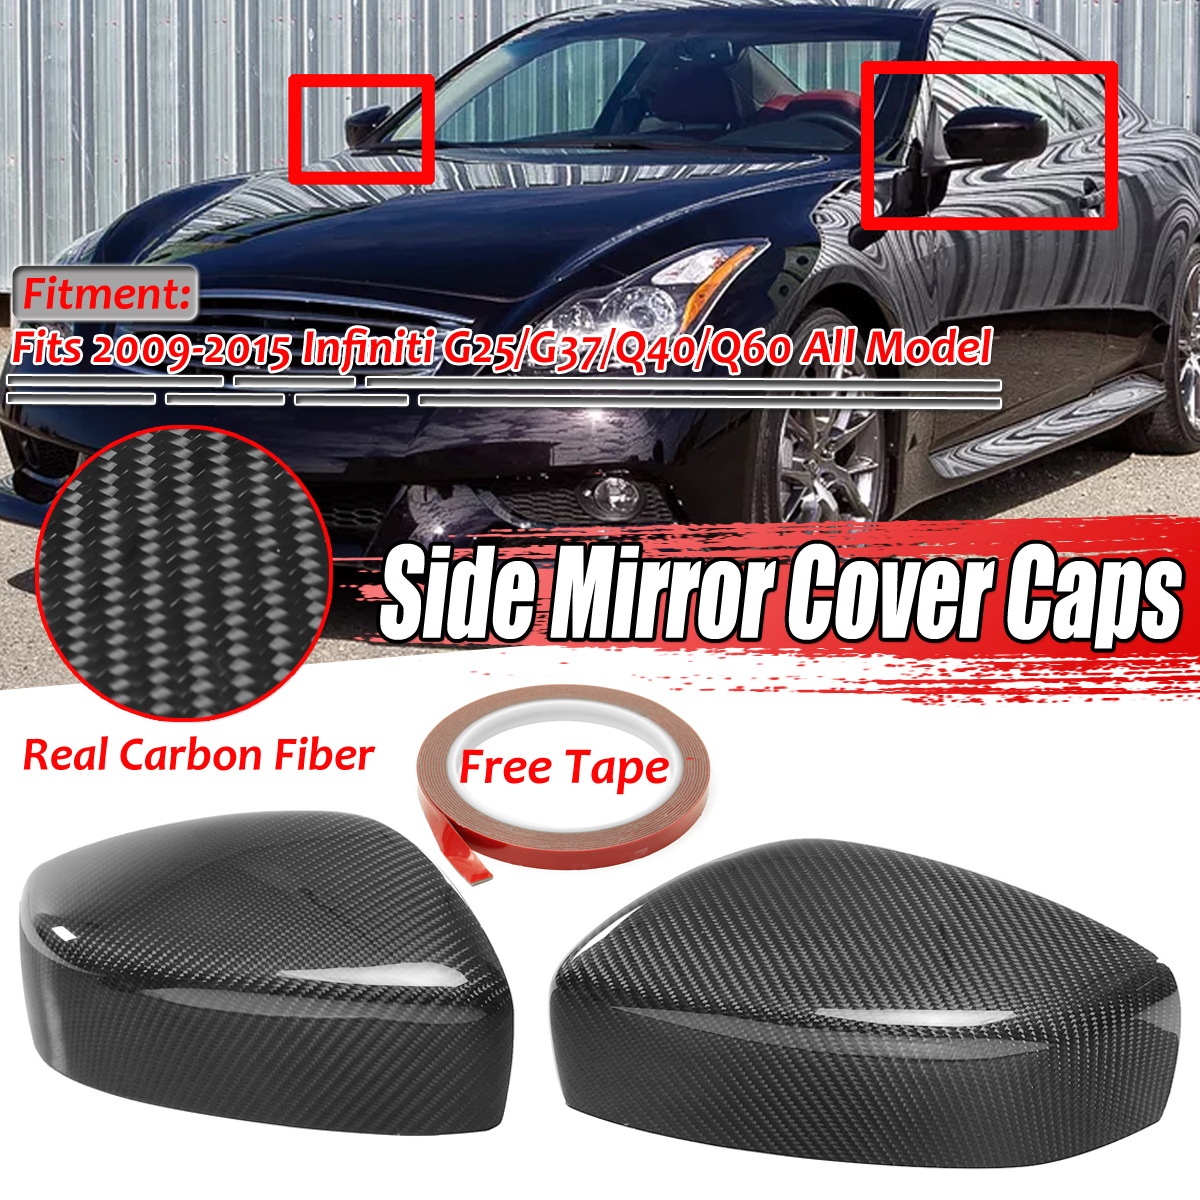 1Pair Carbon Fiber Add-On Side Rear View Mirror Covers For INFINITI G25 G37 Q40 Q60 2009-2015 High Quality Rearview Mirror Cover